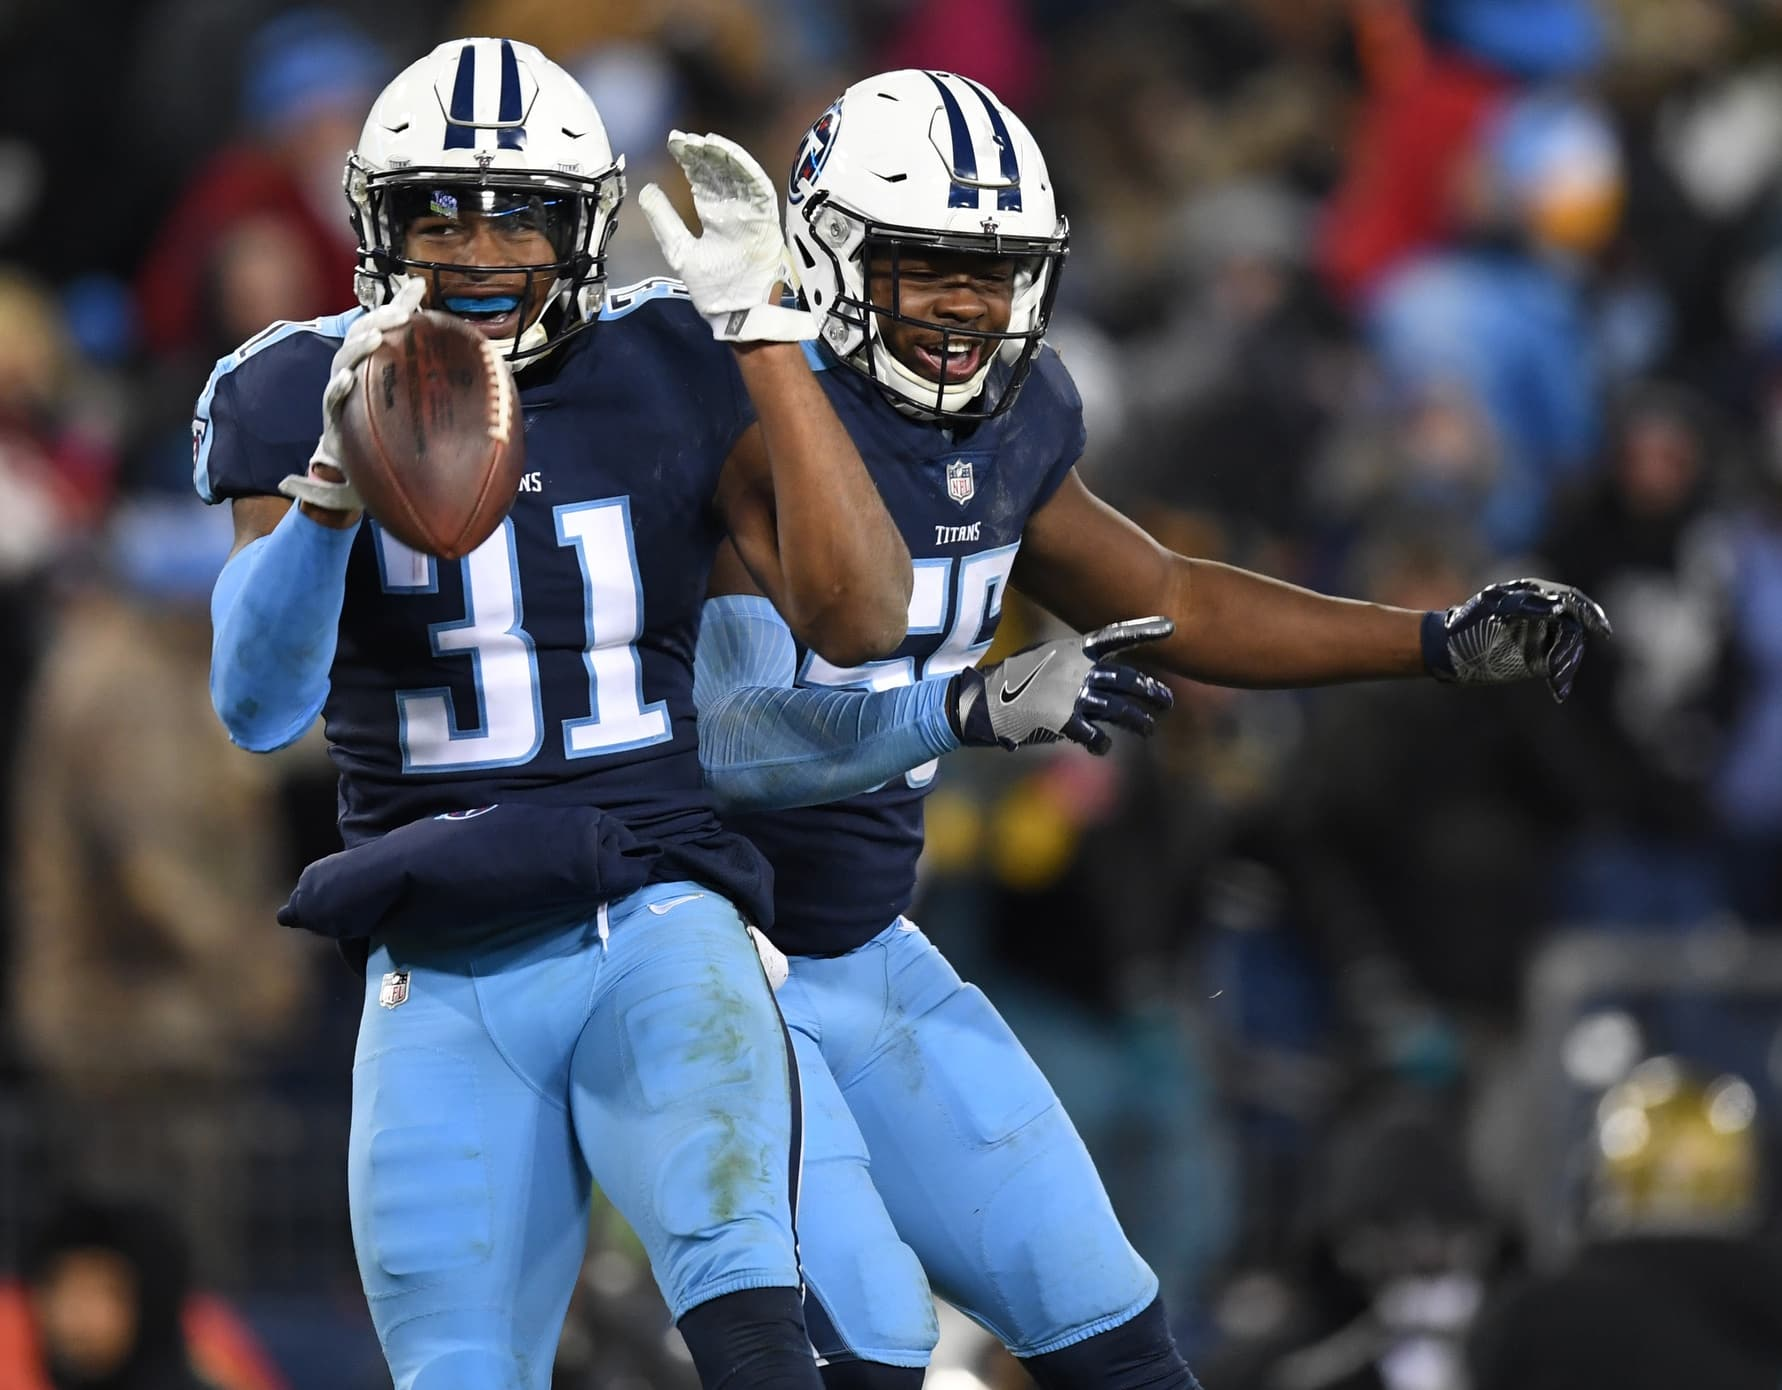 Kevin Byard has morphed into one of the best safeties in the game.